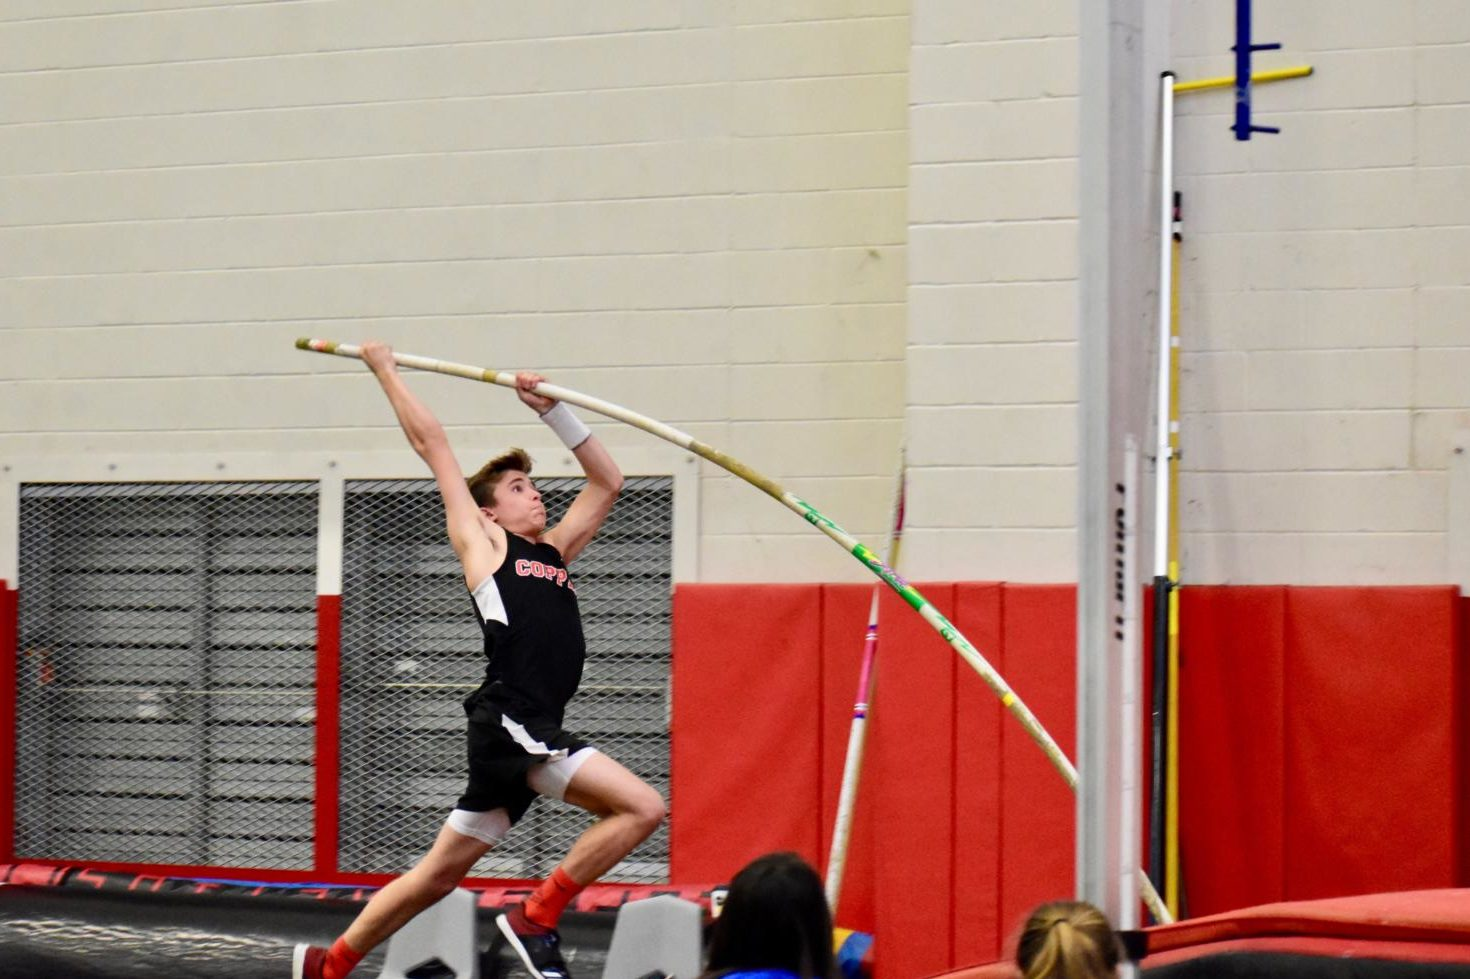 Coppell freshman Michael Nance competes in pole vault at the Coppell Relays meet at Coppell High School on March 2. Tonight and tomorrow, the Coppell track team is competing in the Class 6-6A District meet.